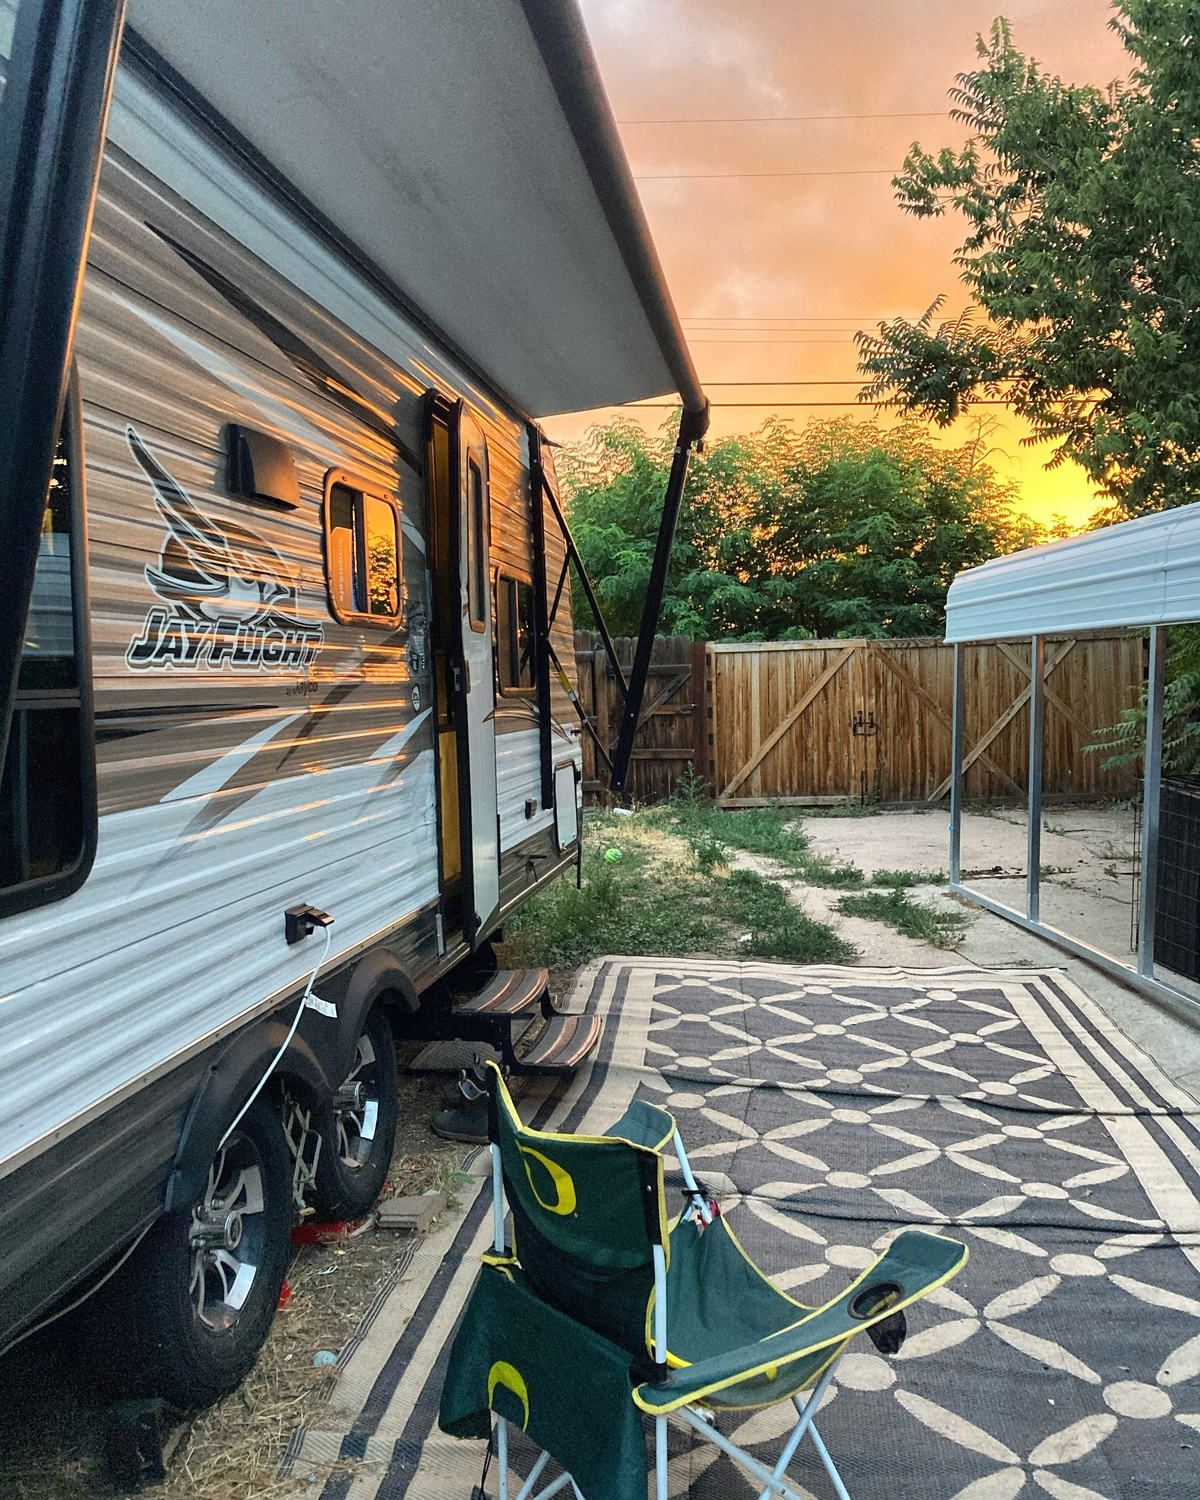 The Denver sunset shines over the backyard parking spot of Rebecca's RV.